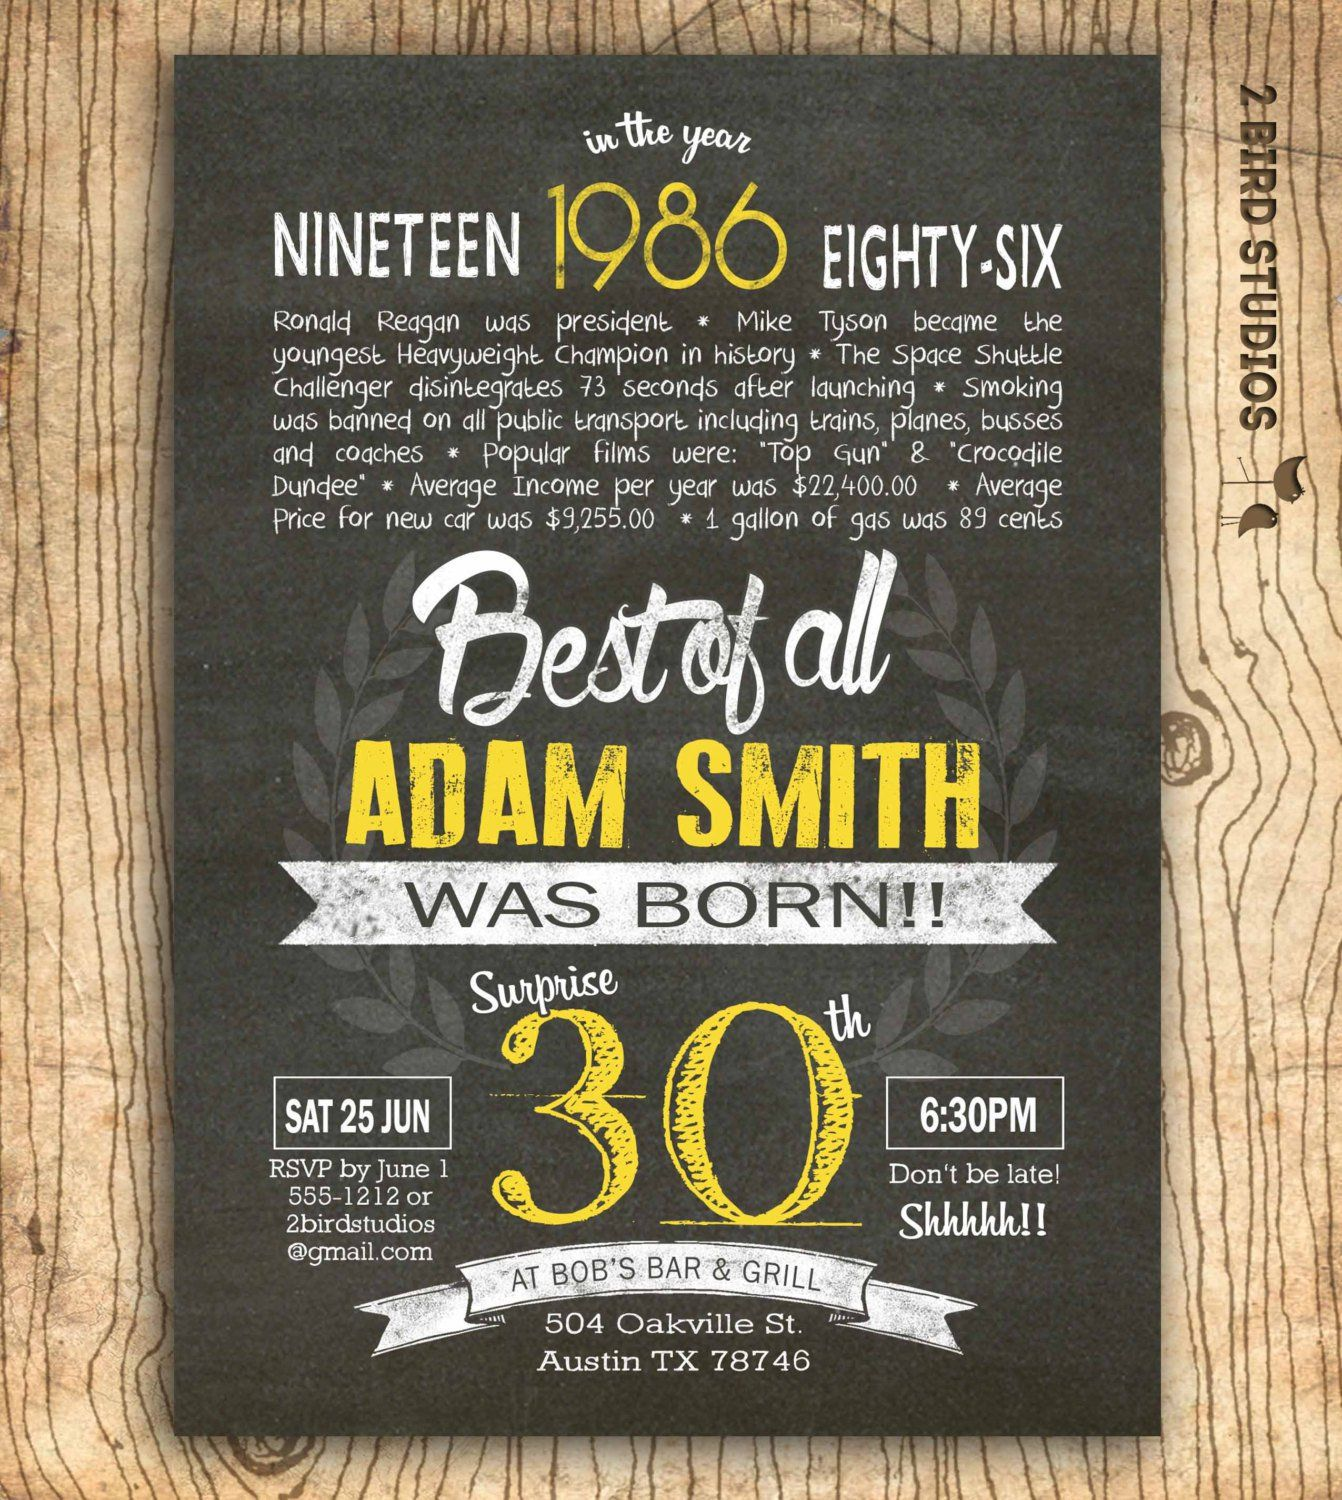 30th birthday invitations wording funny new birthday card 30th birthday invitations